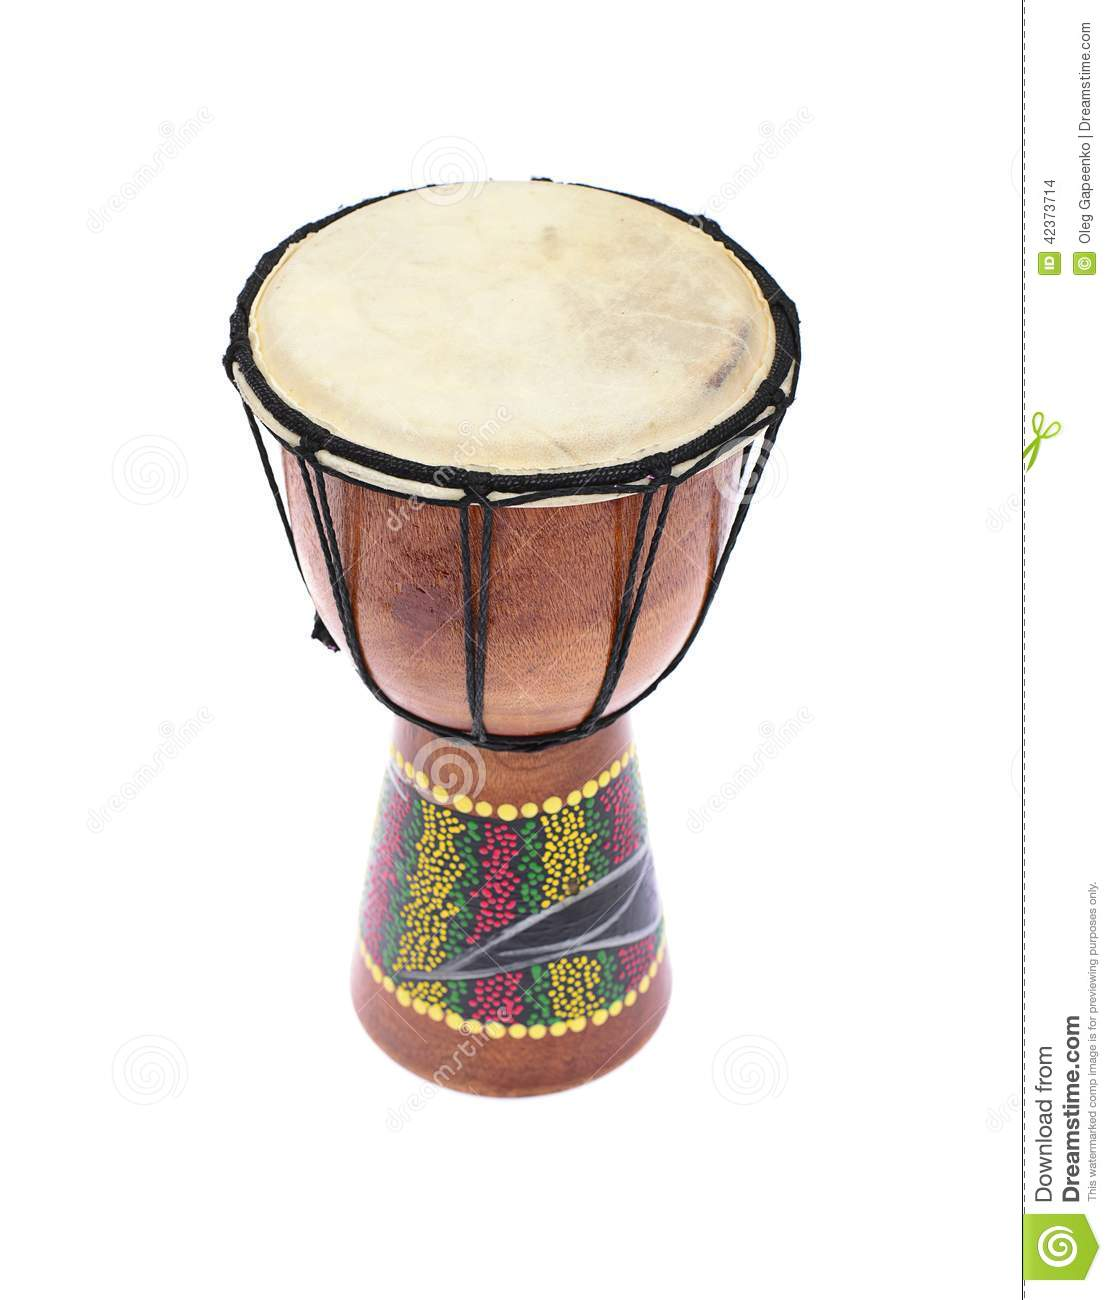 Djembe drum tam tam isolated on white background stock photo image 42373714 - Voetenbank tam tam ...